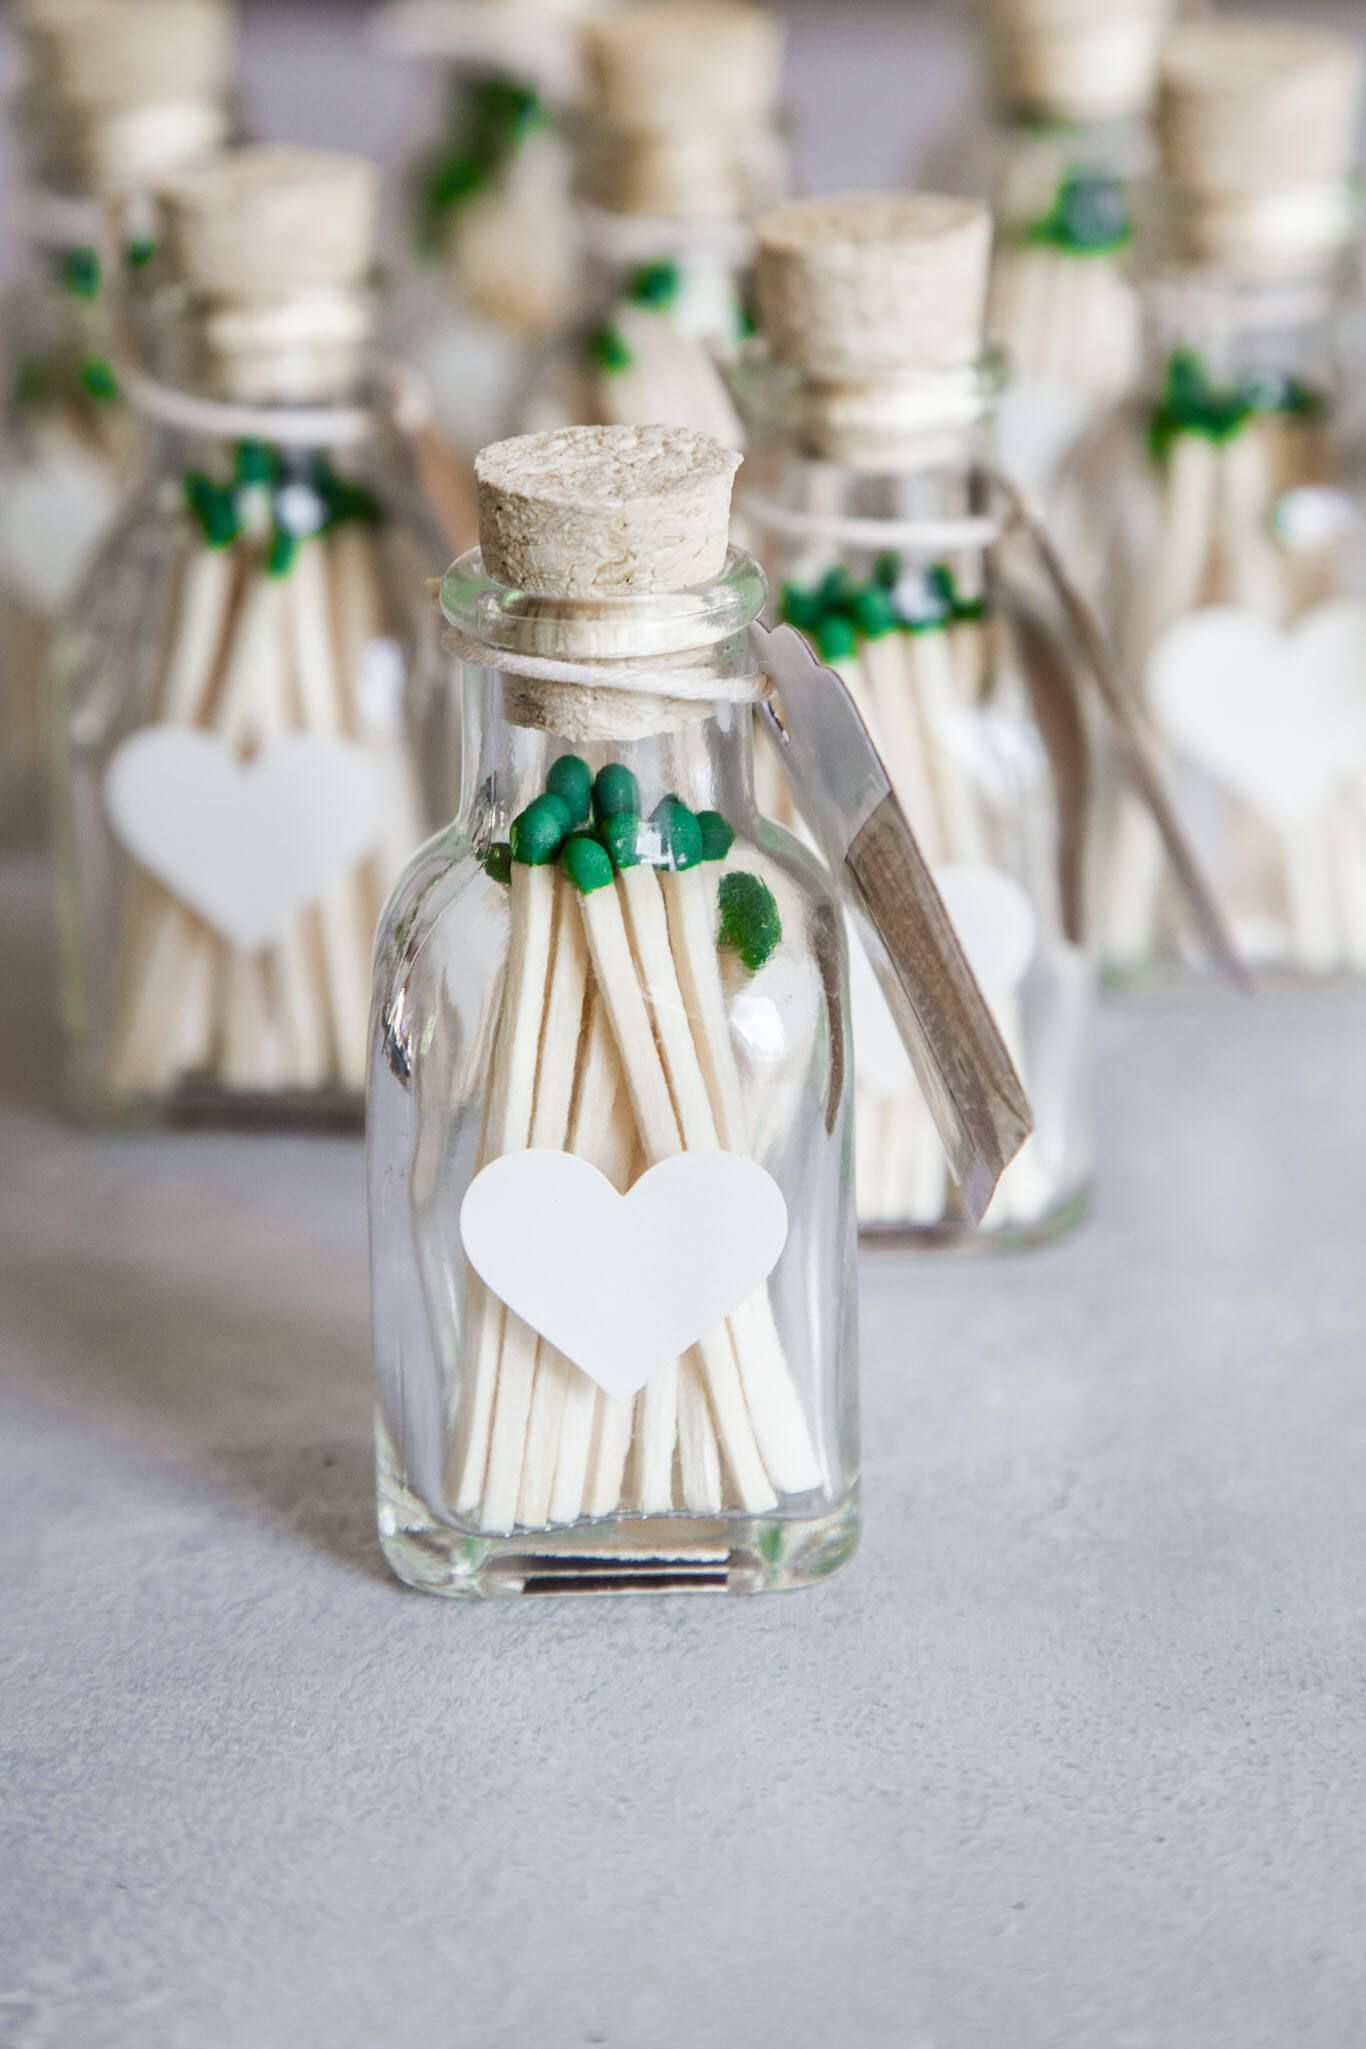 Learn to make your own DIY wedding favors. These match